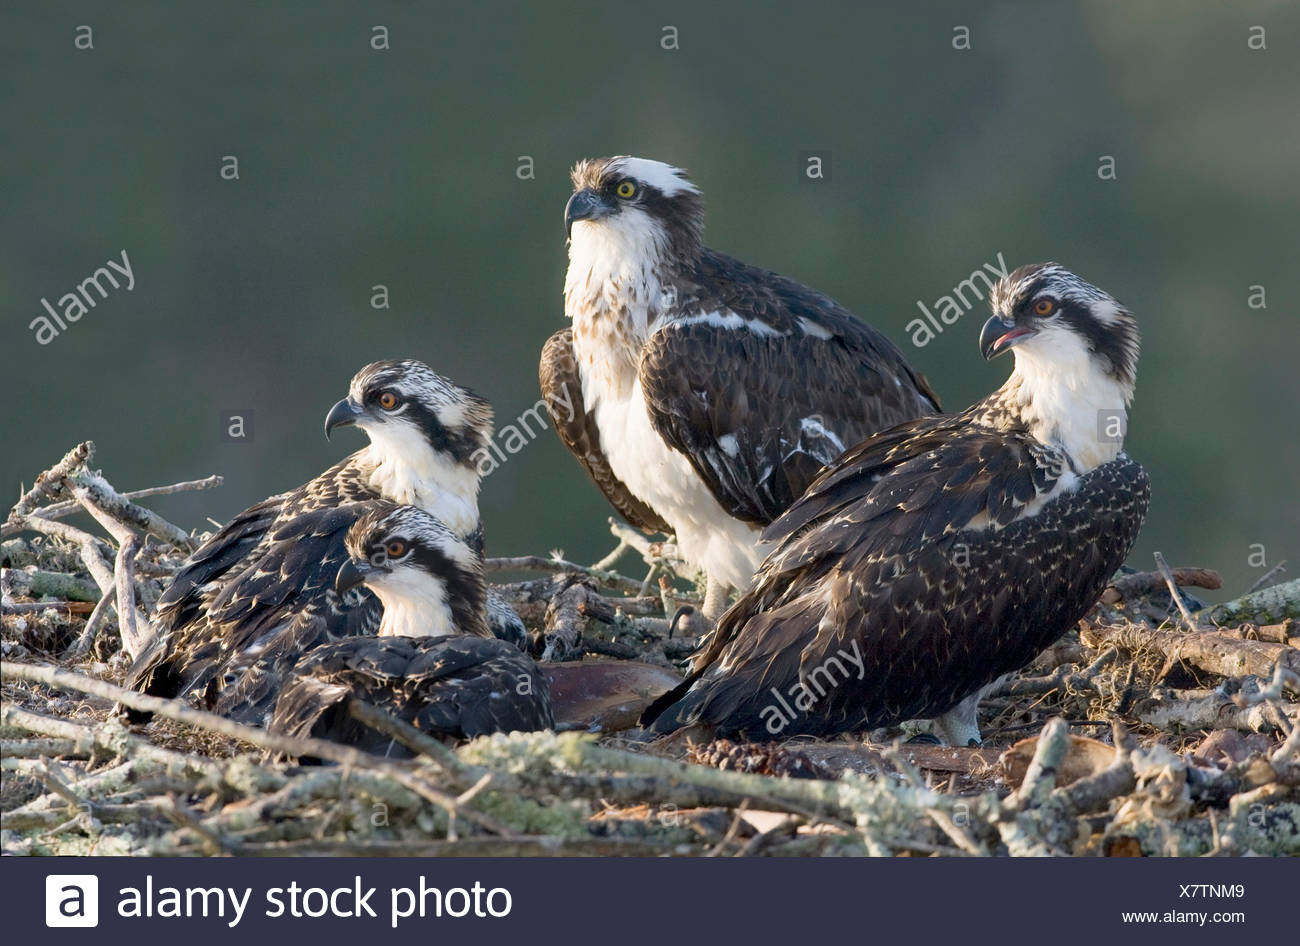 Osprey (Pandion haliaetus) with its young ones on a nest - Stock Image